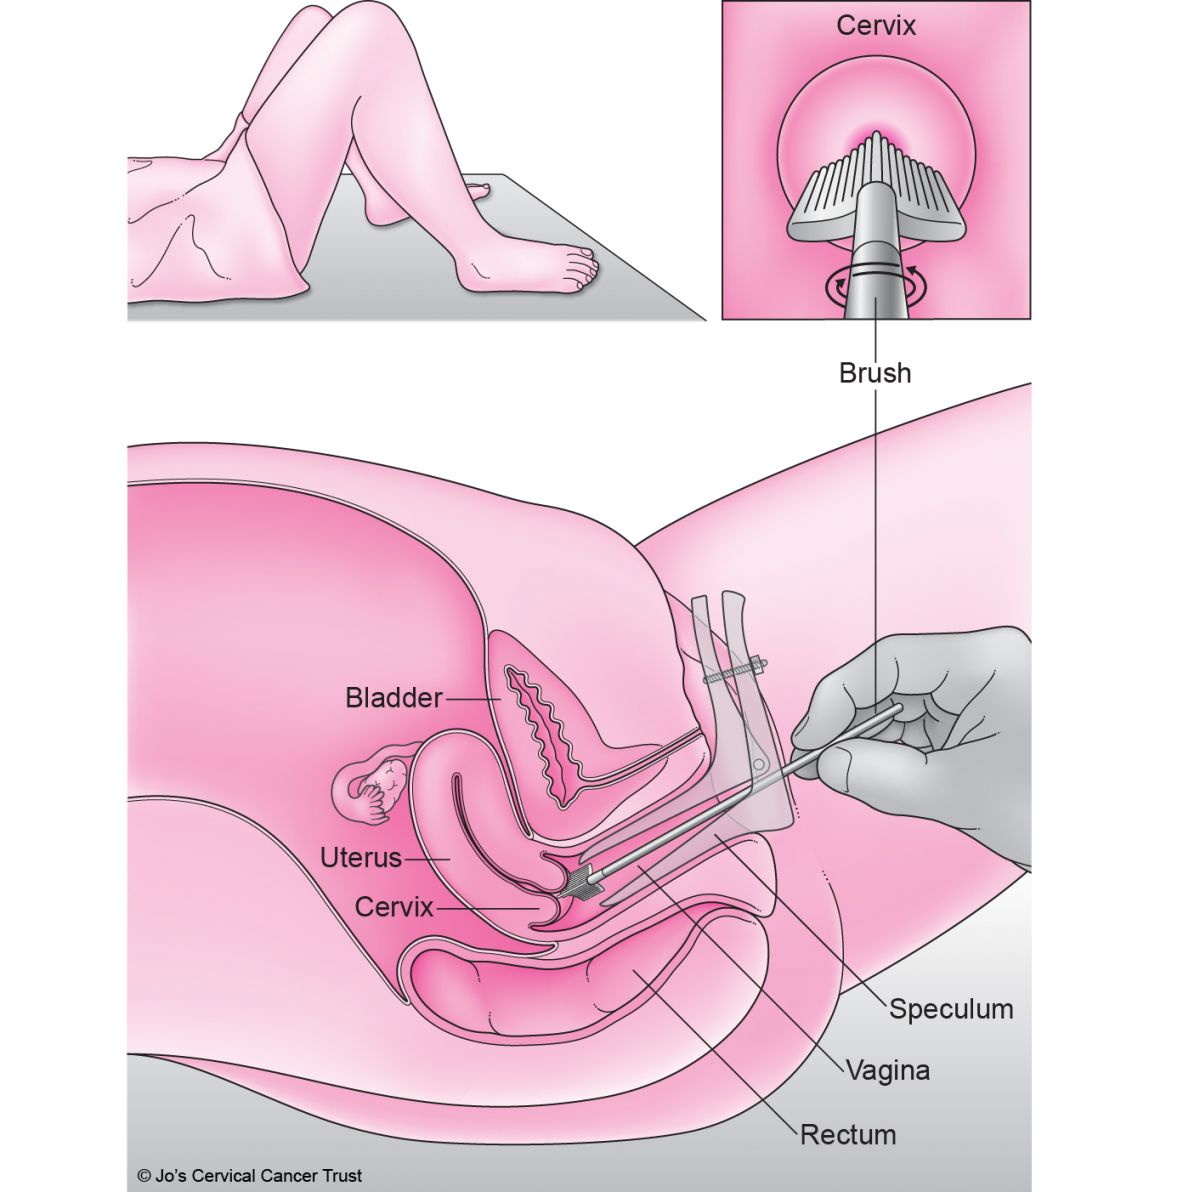 Someone lying back on an examination bed. A nurse has gently put a speculum inside the person's vagina to see the cervix, so they can take a sample of cells.